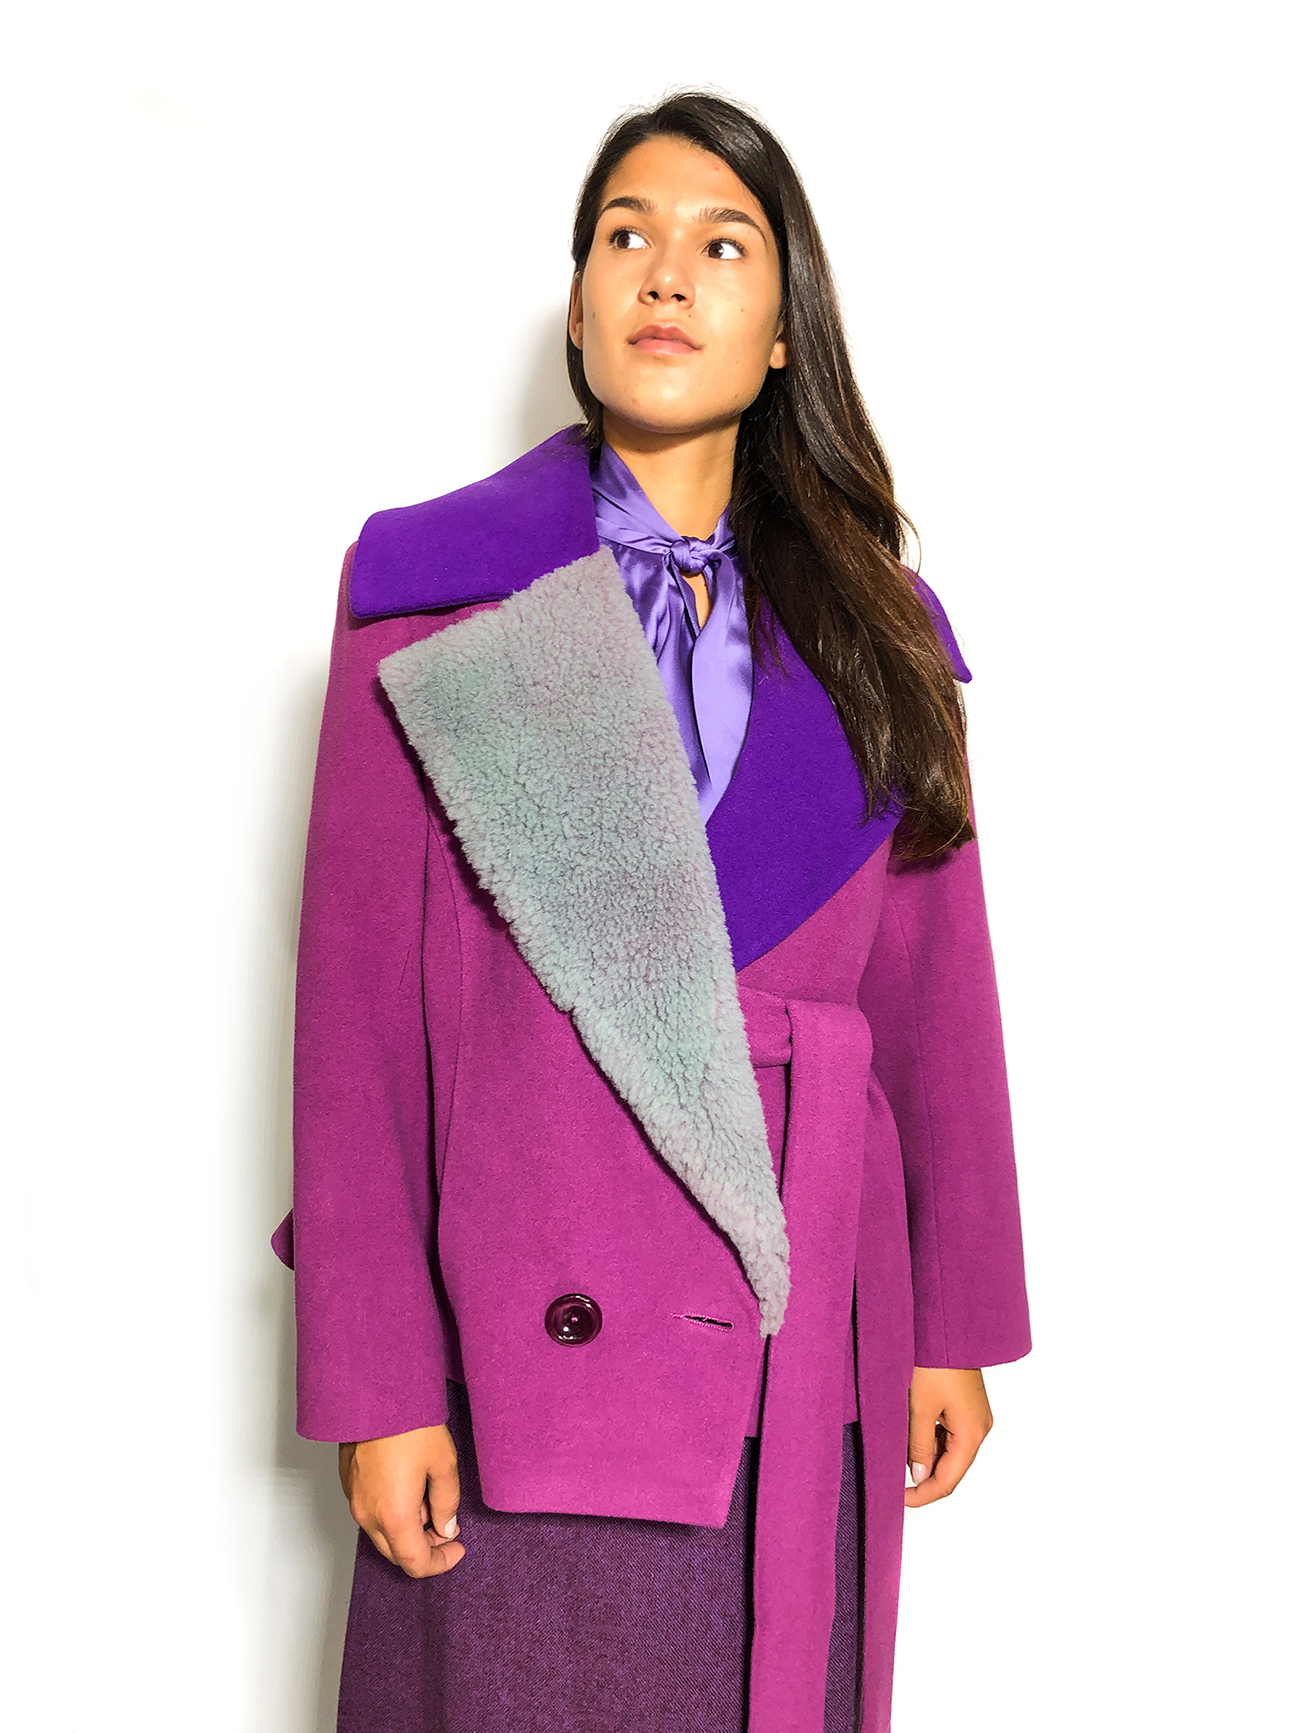 Multicolored Jacket